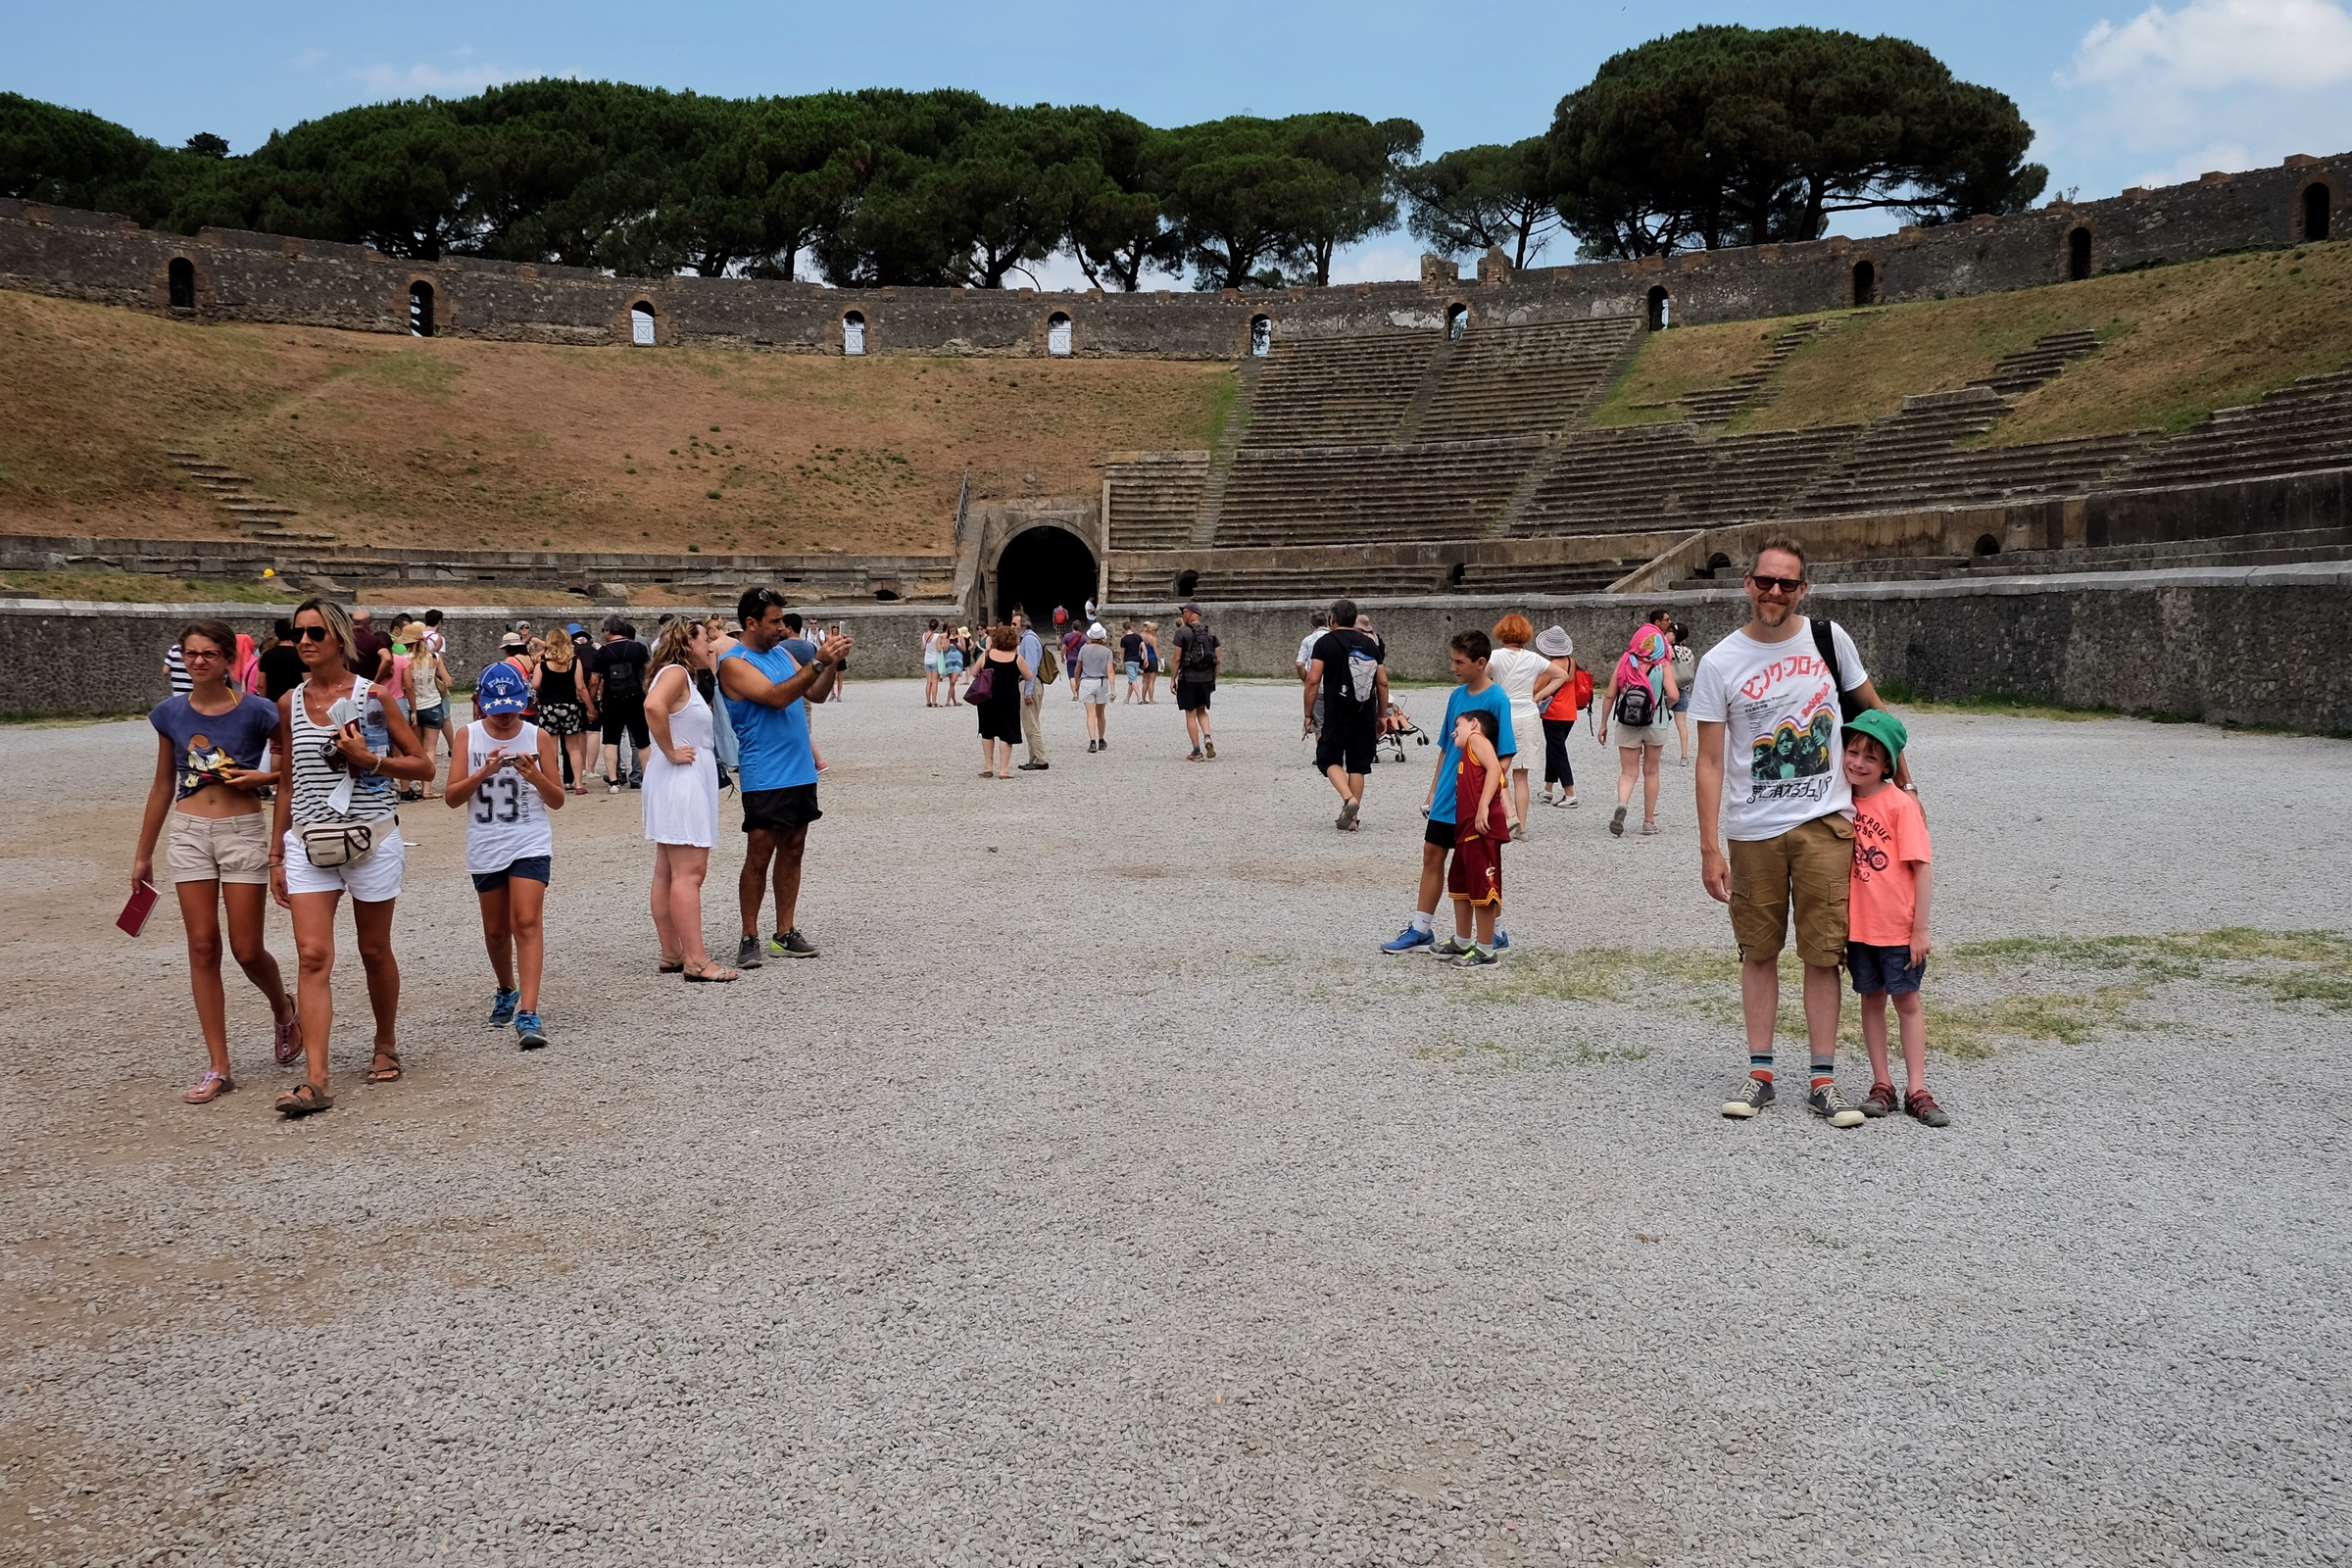 Standing where Pink Floyd played in the Amphitheatre of Pompeii.